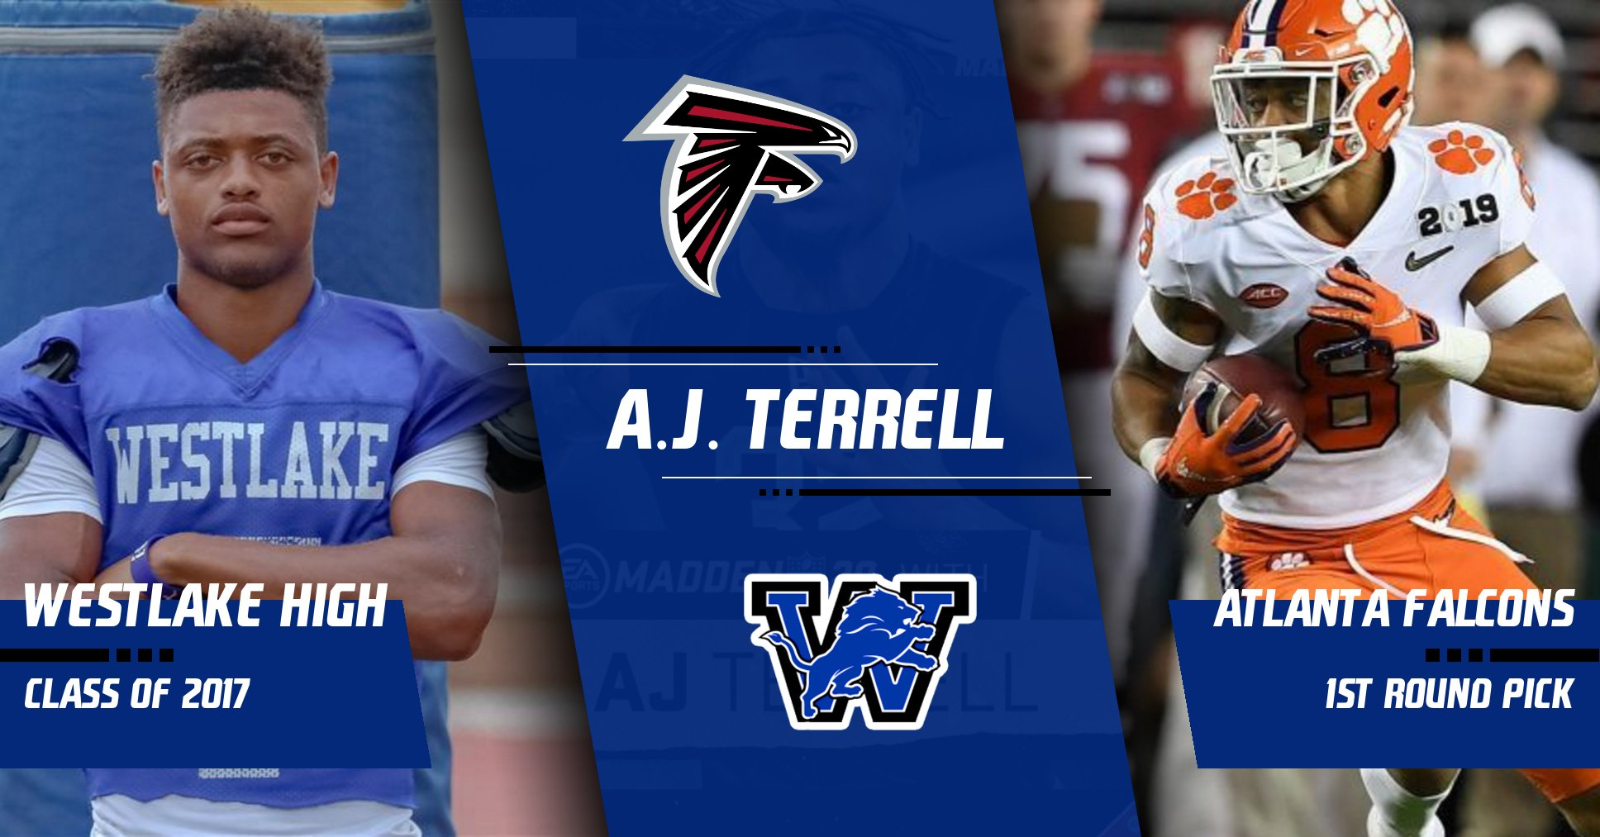 A.J. Terrell – Coming Home